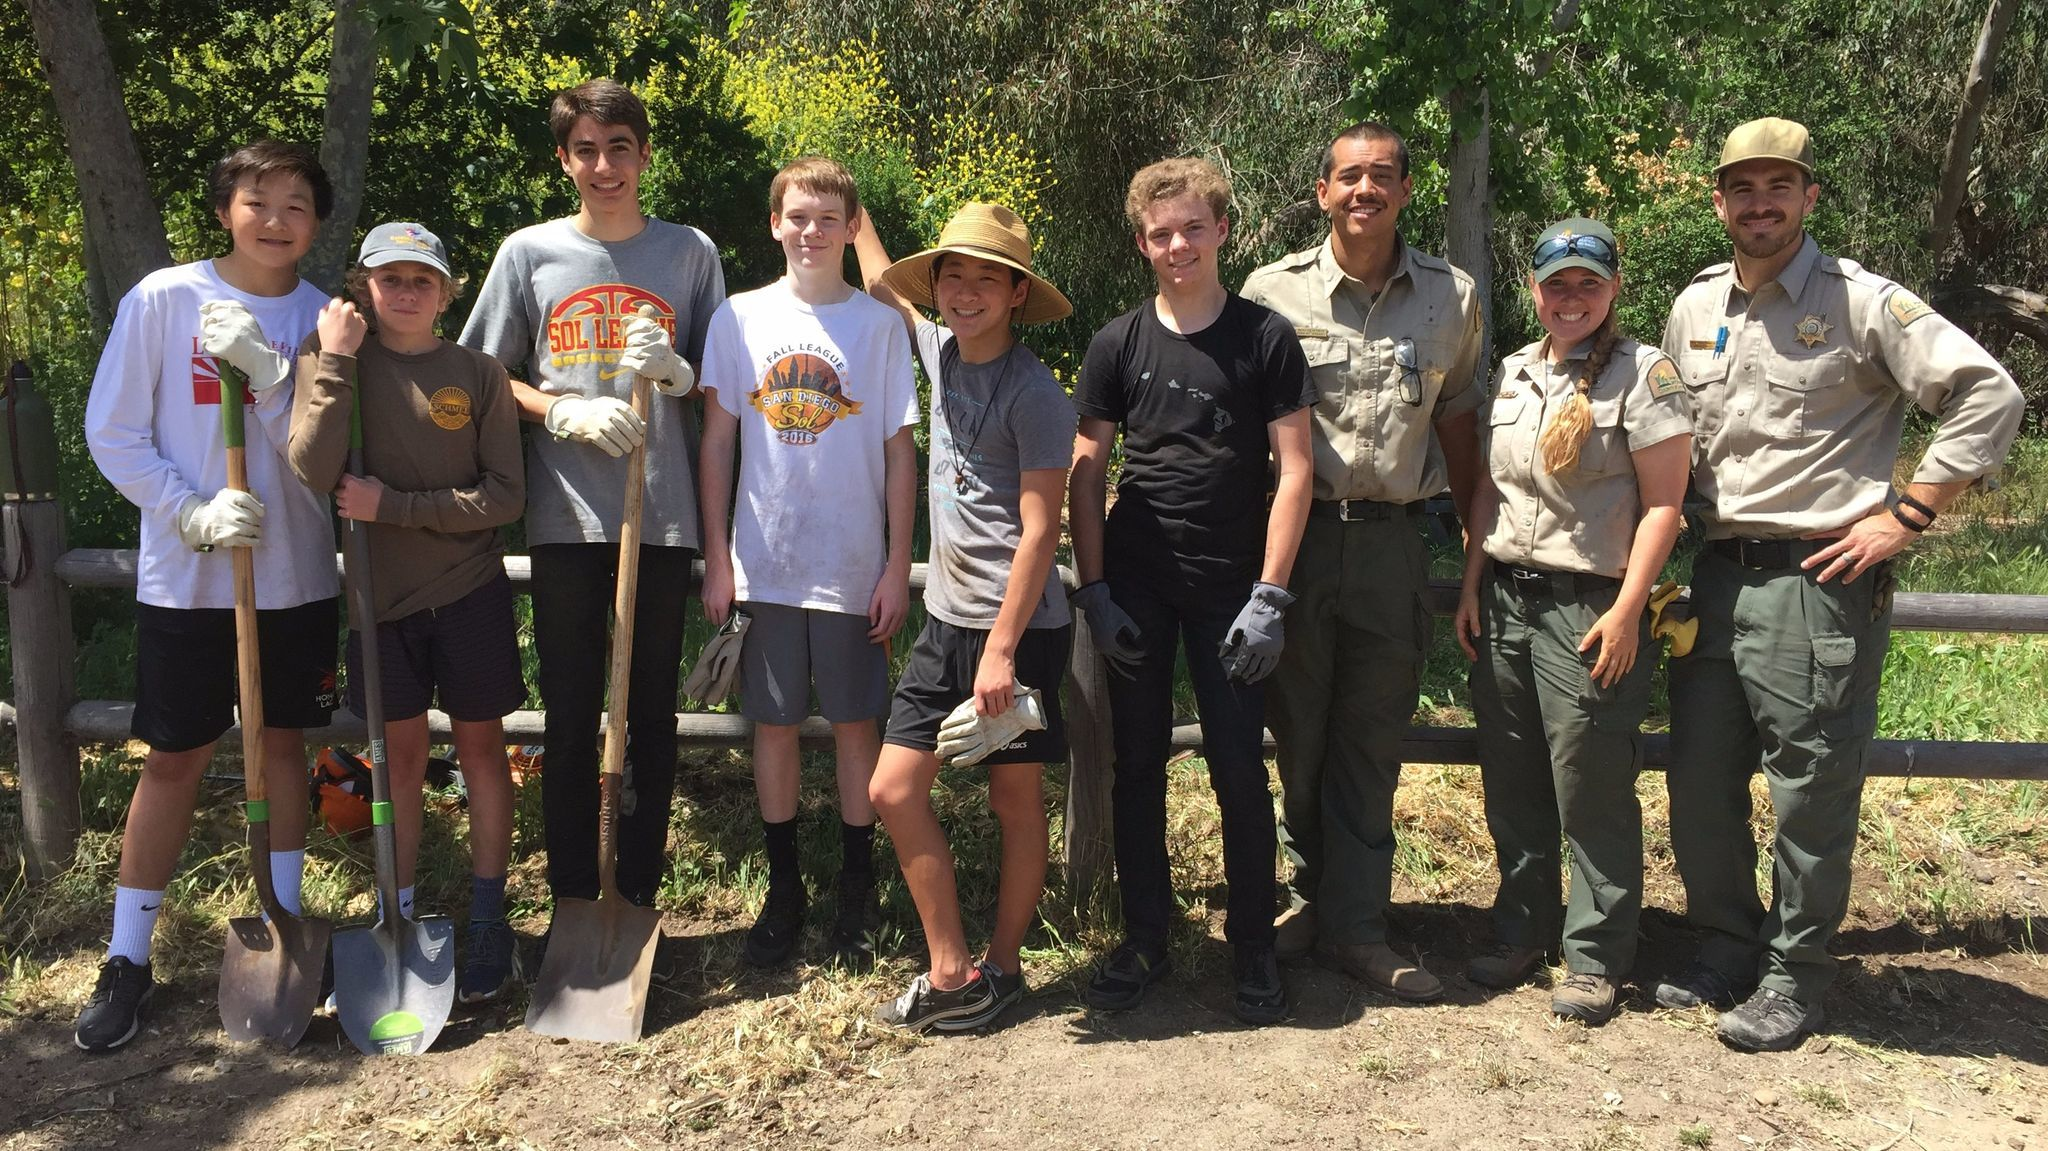 Eagle Scout workers Dash Tsai, Rocco Cappetta, R.J. Faltinsky, James Roesser, Noah Lin, John Flaming with San Elijo Lagoon Ranger Beau Devereux, Ranger Alison Lee and Ranger Marshall Gorham.